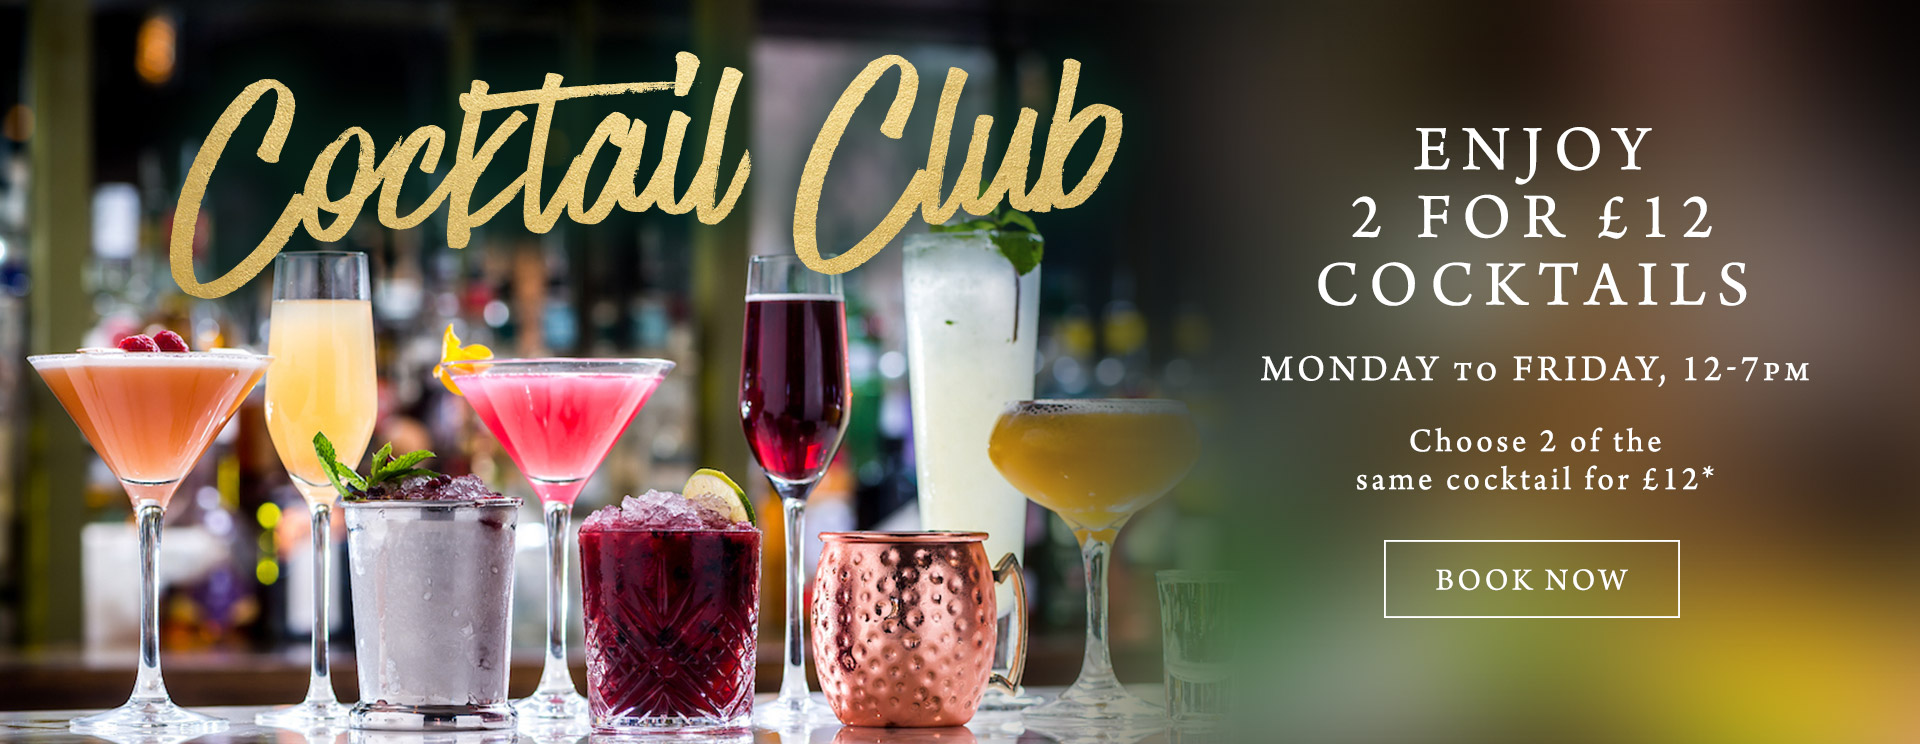 2 for £12 cocktails at The Deer Park